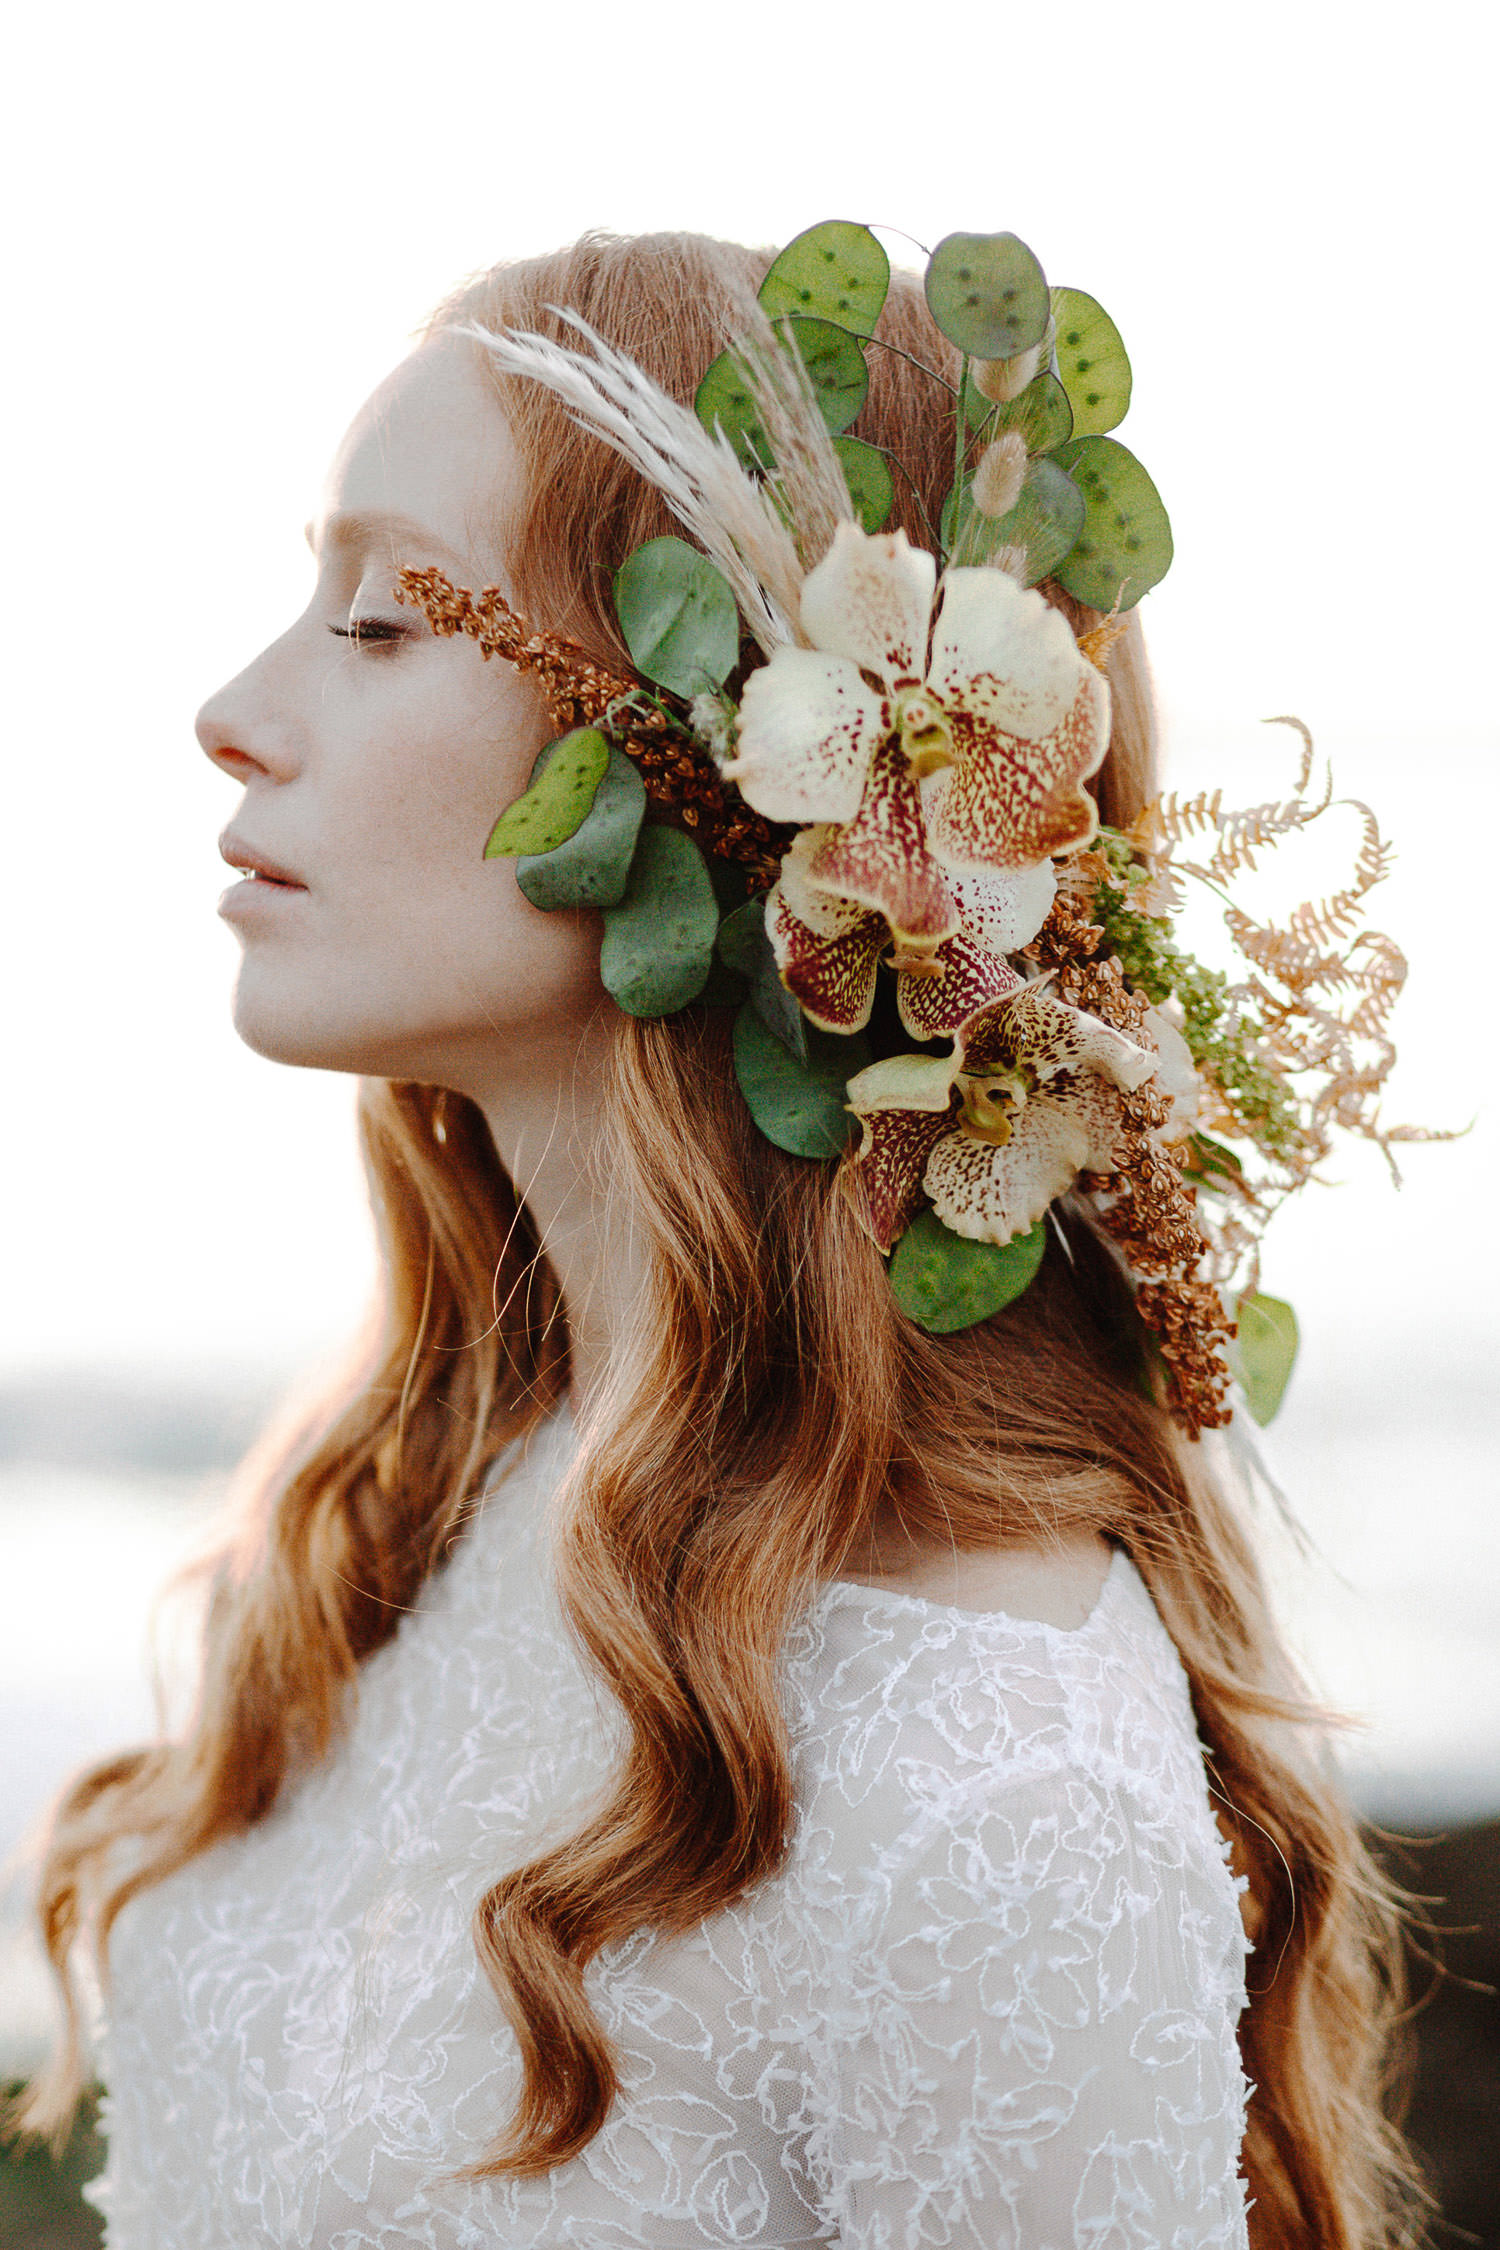 Ethereal bride waiting her groom with stunning floral headpiece by Chiara Sperti Floral Events - Photo: Camilla Anchisi